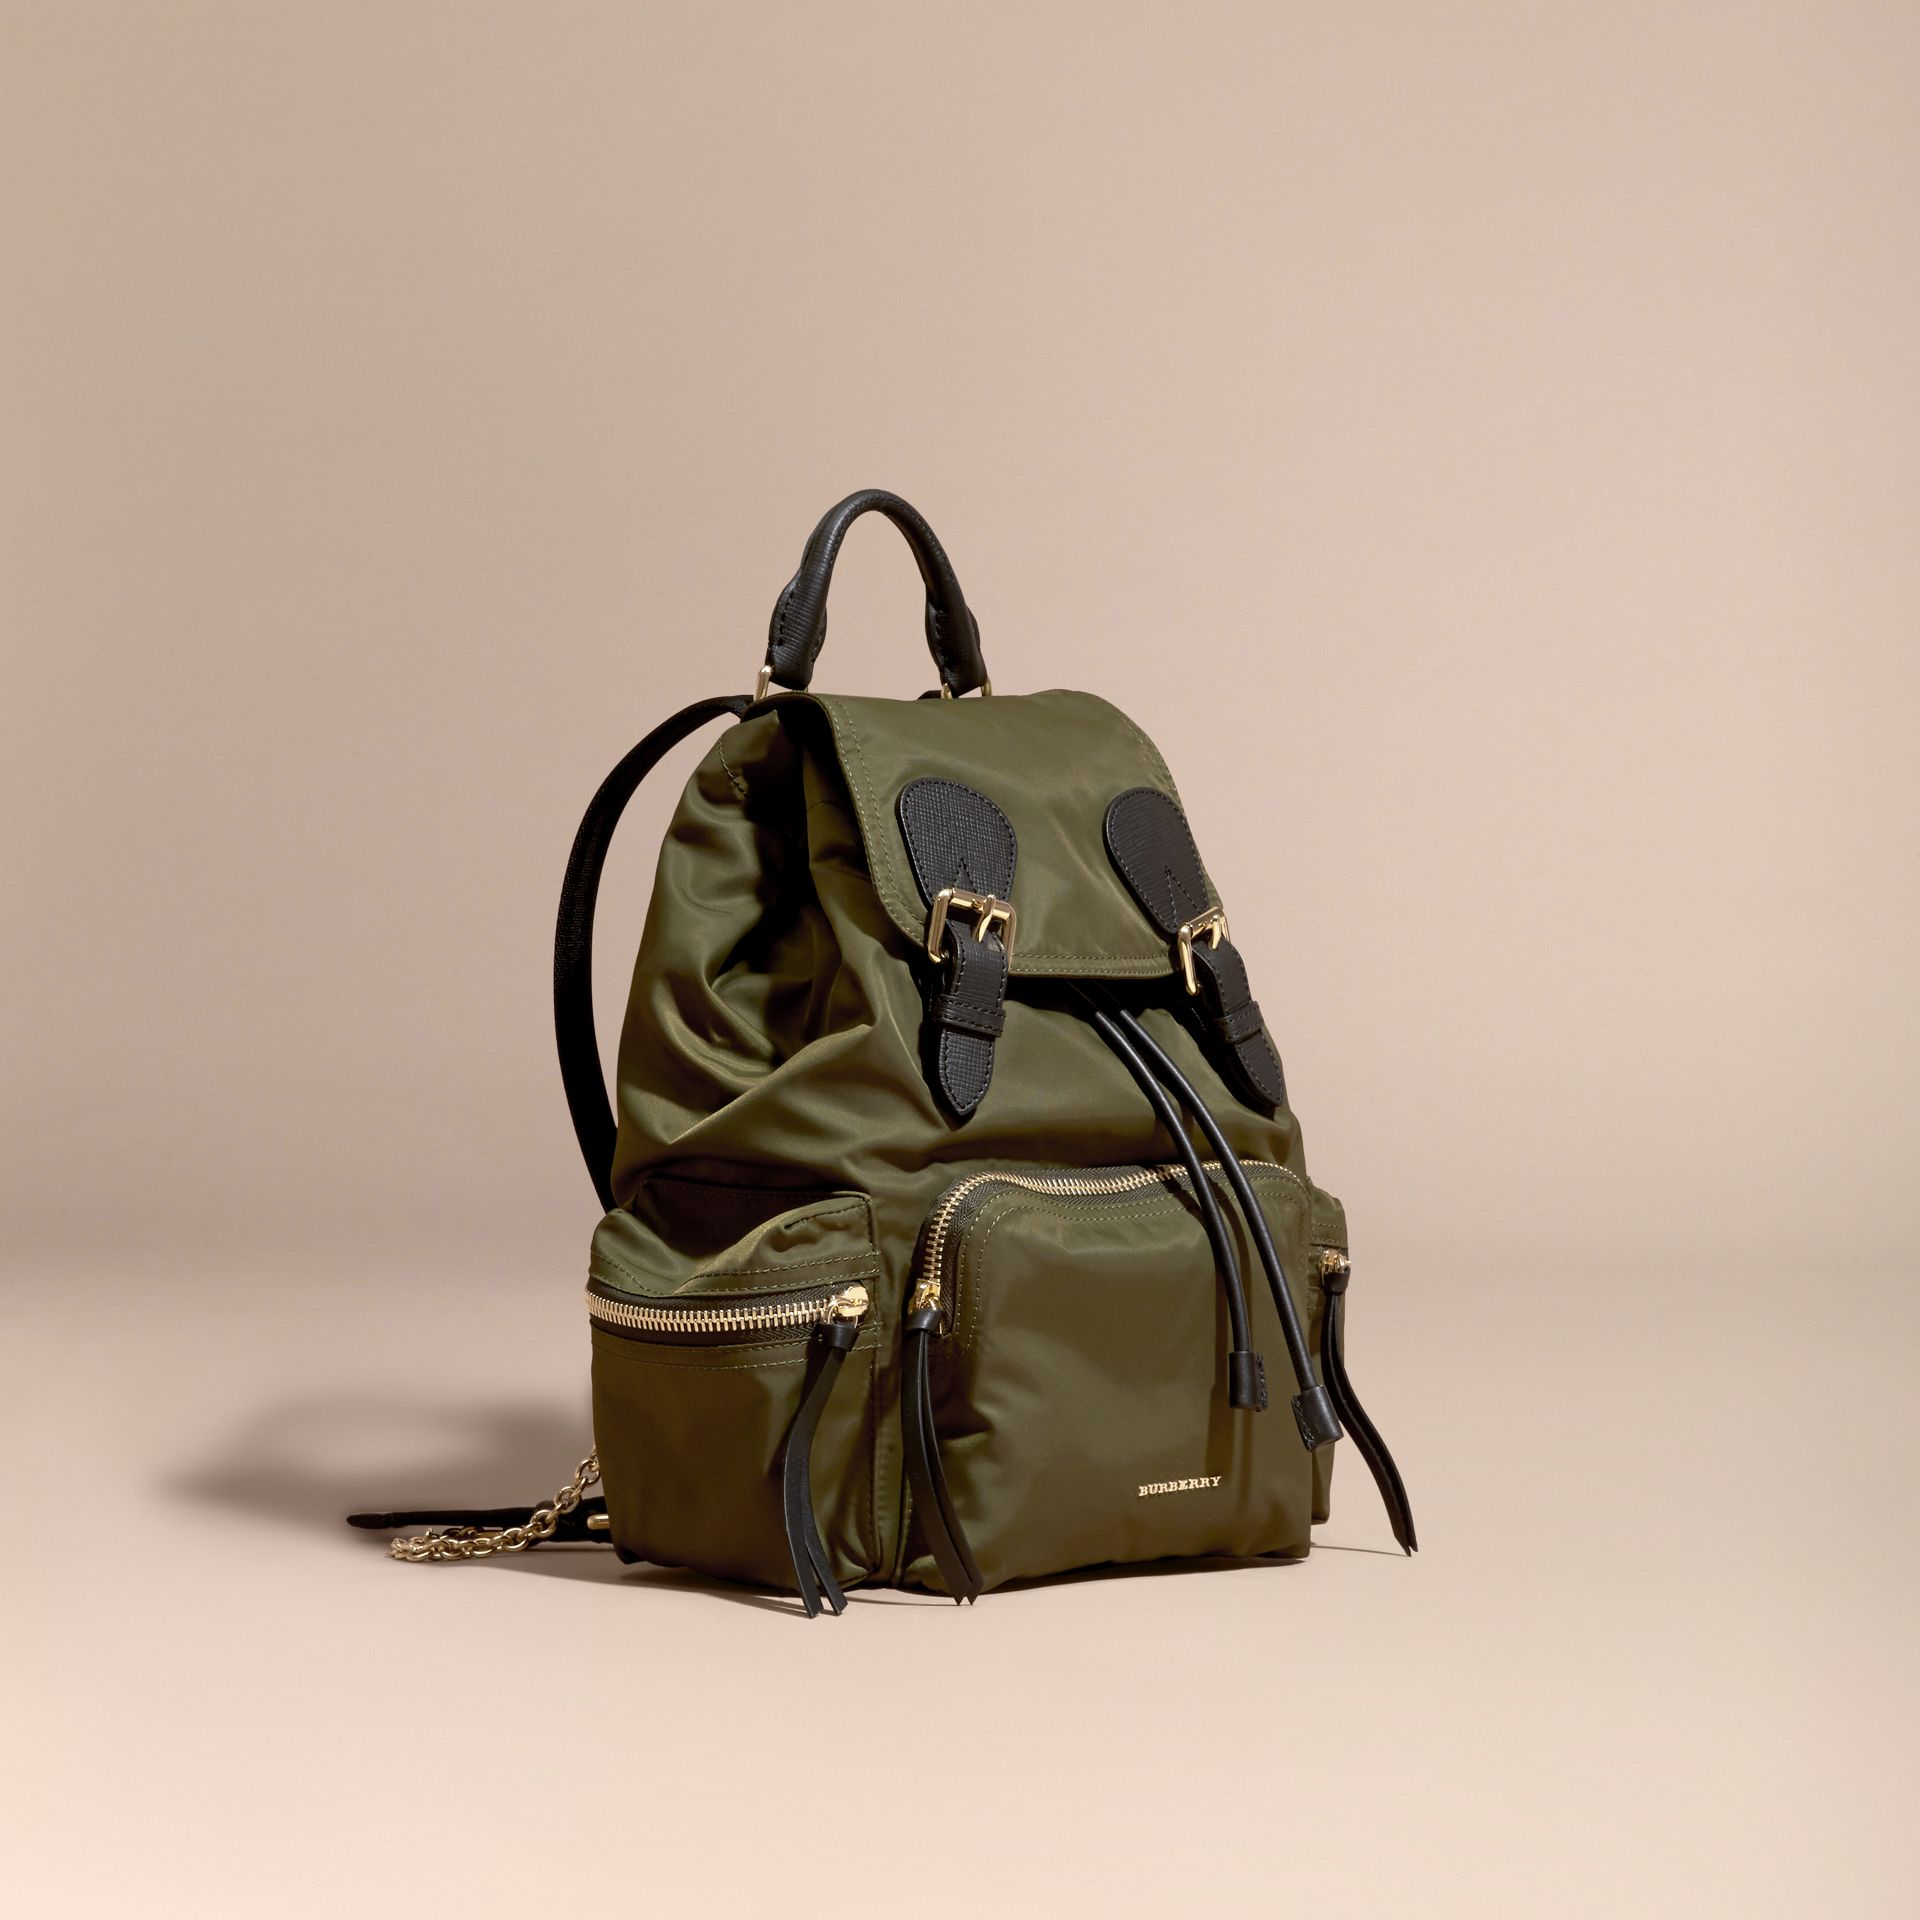 Sac The Rucksack medium en nylon technique et cuir Vert Toile - photo de la galerie 1